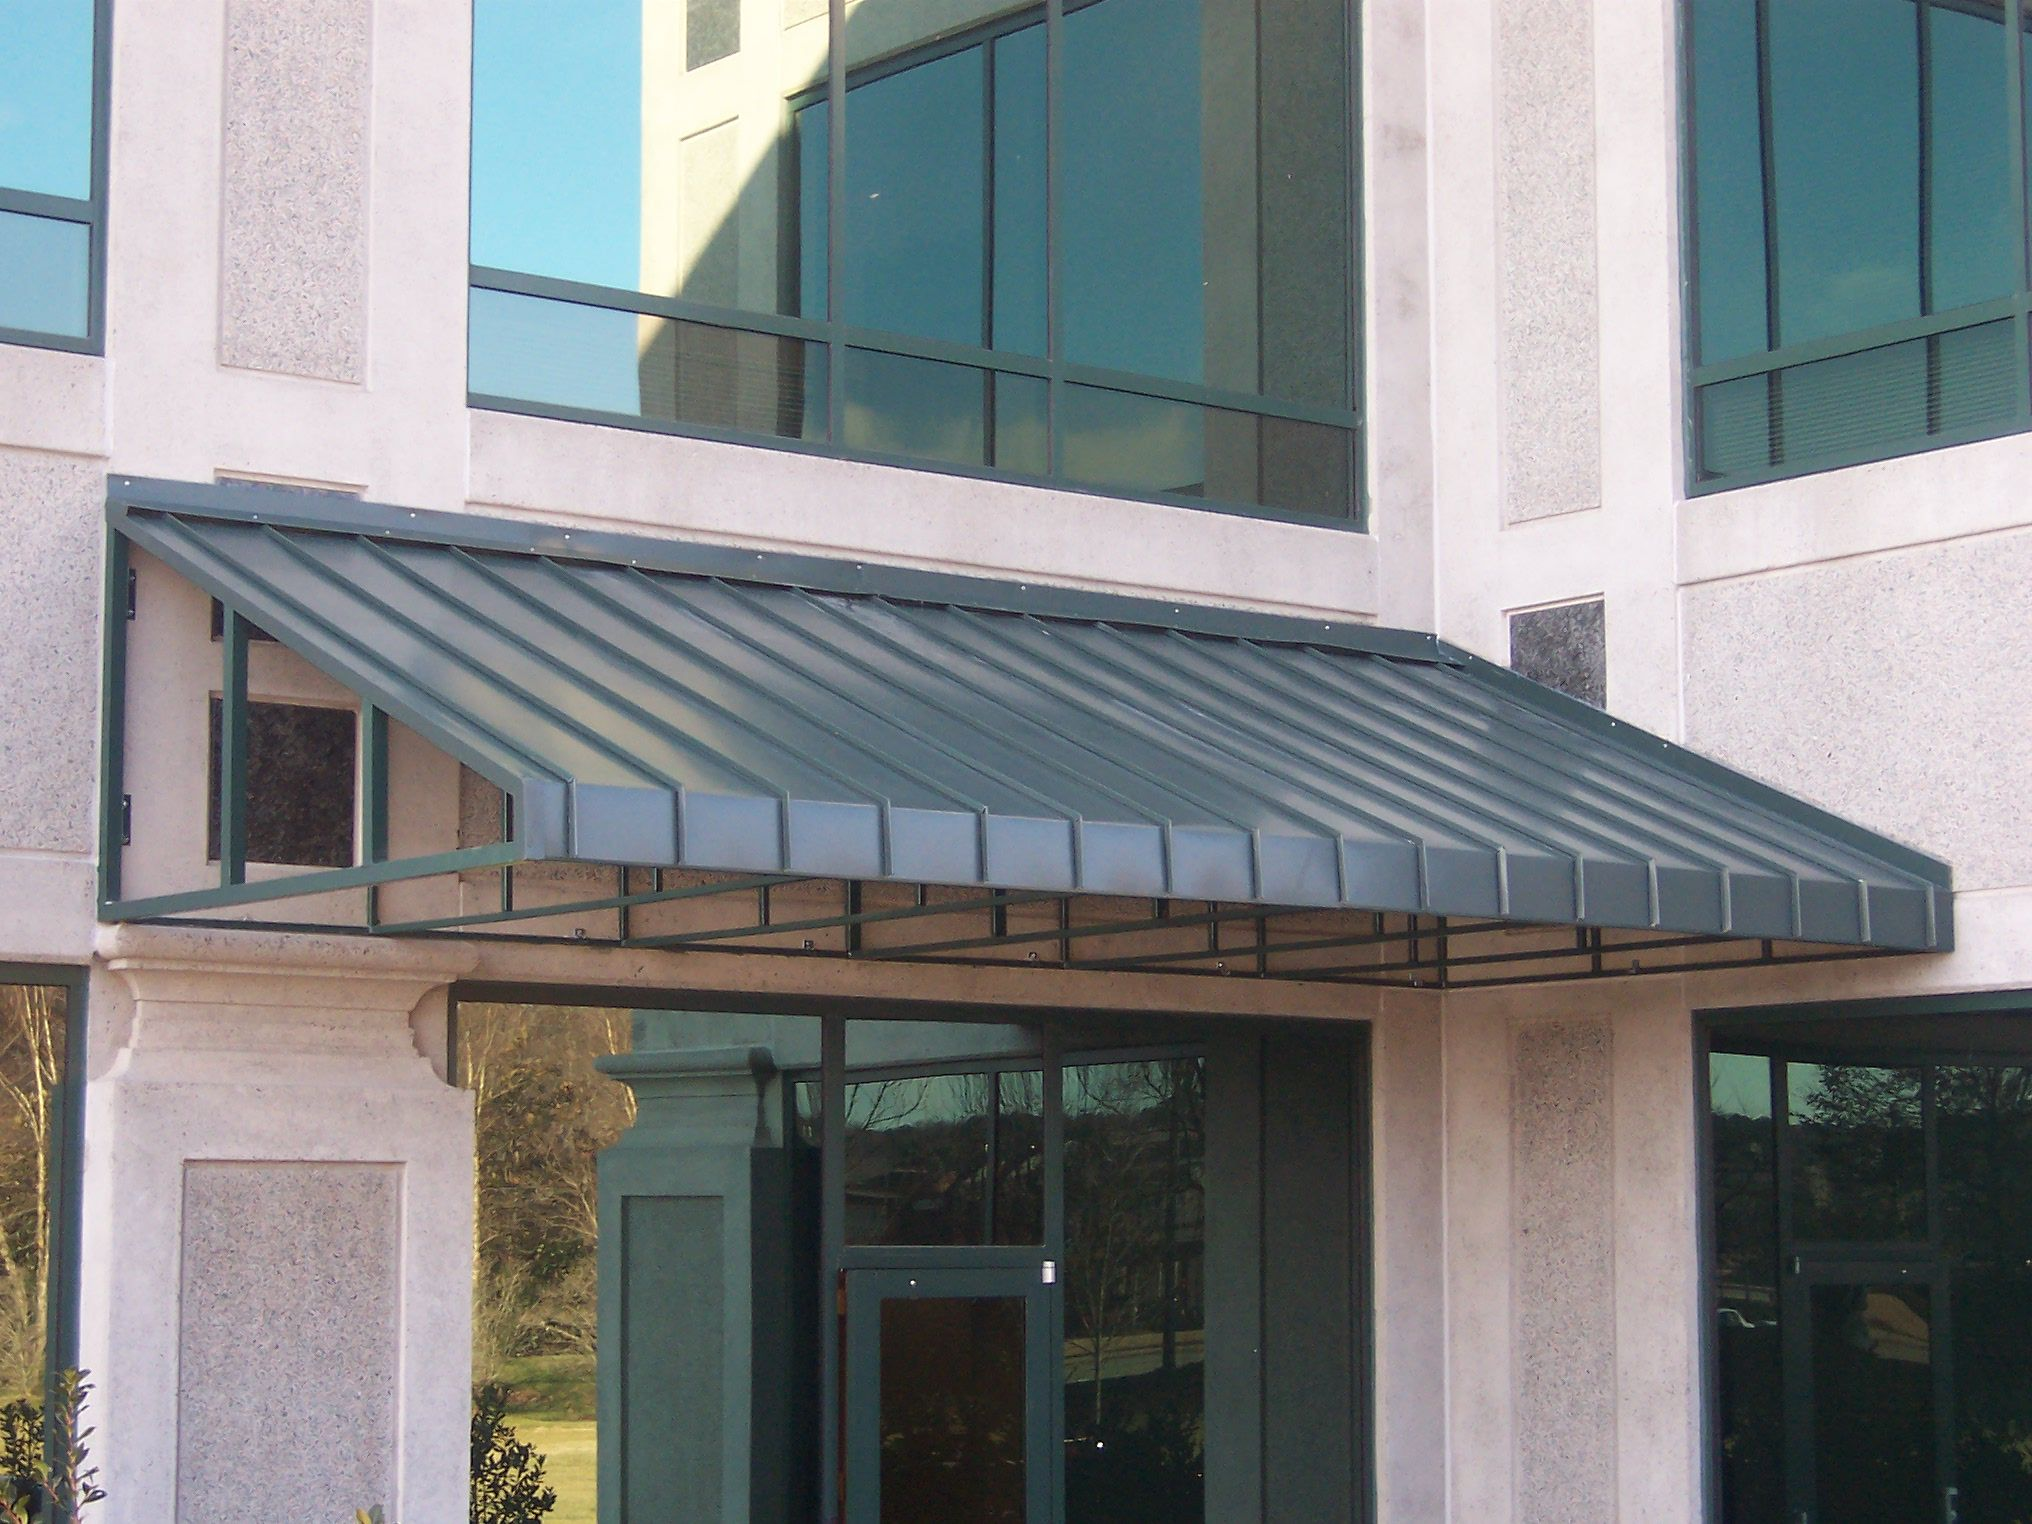 DECORATIVE METAL AWNINGS FOR STORES